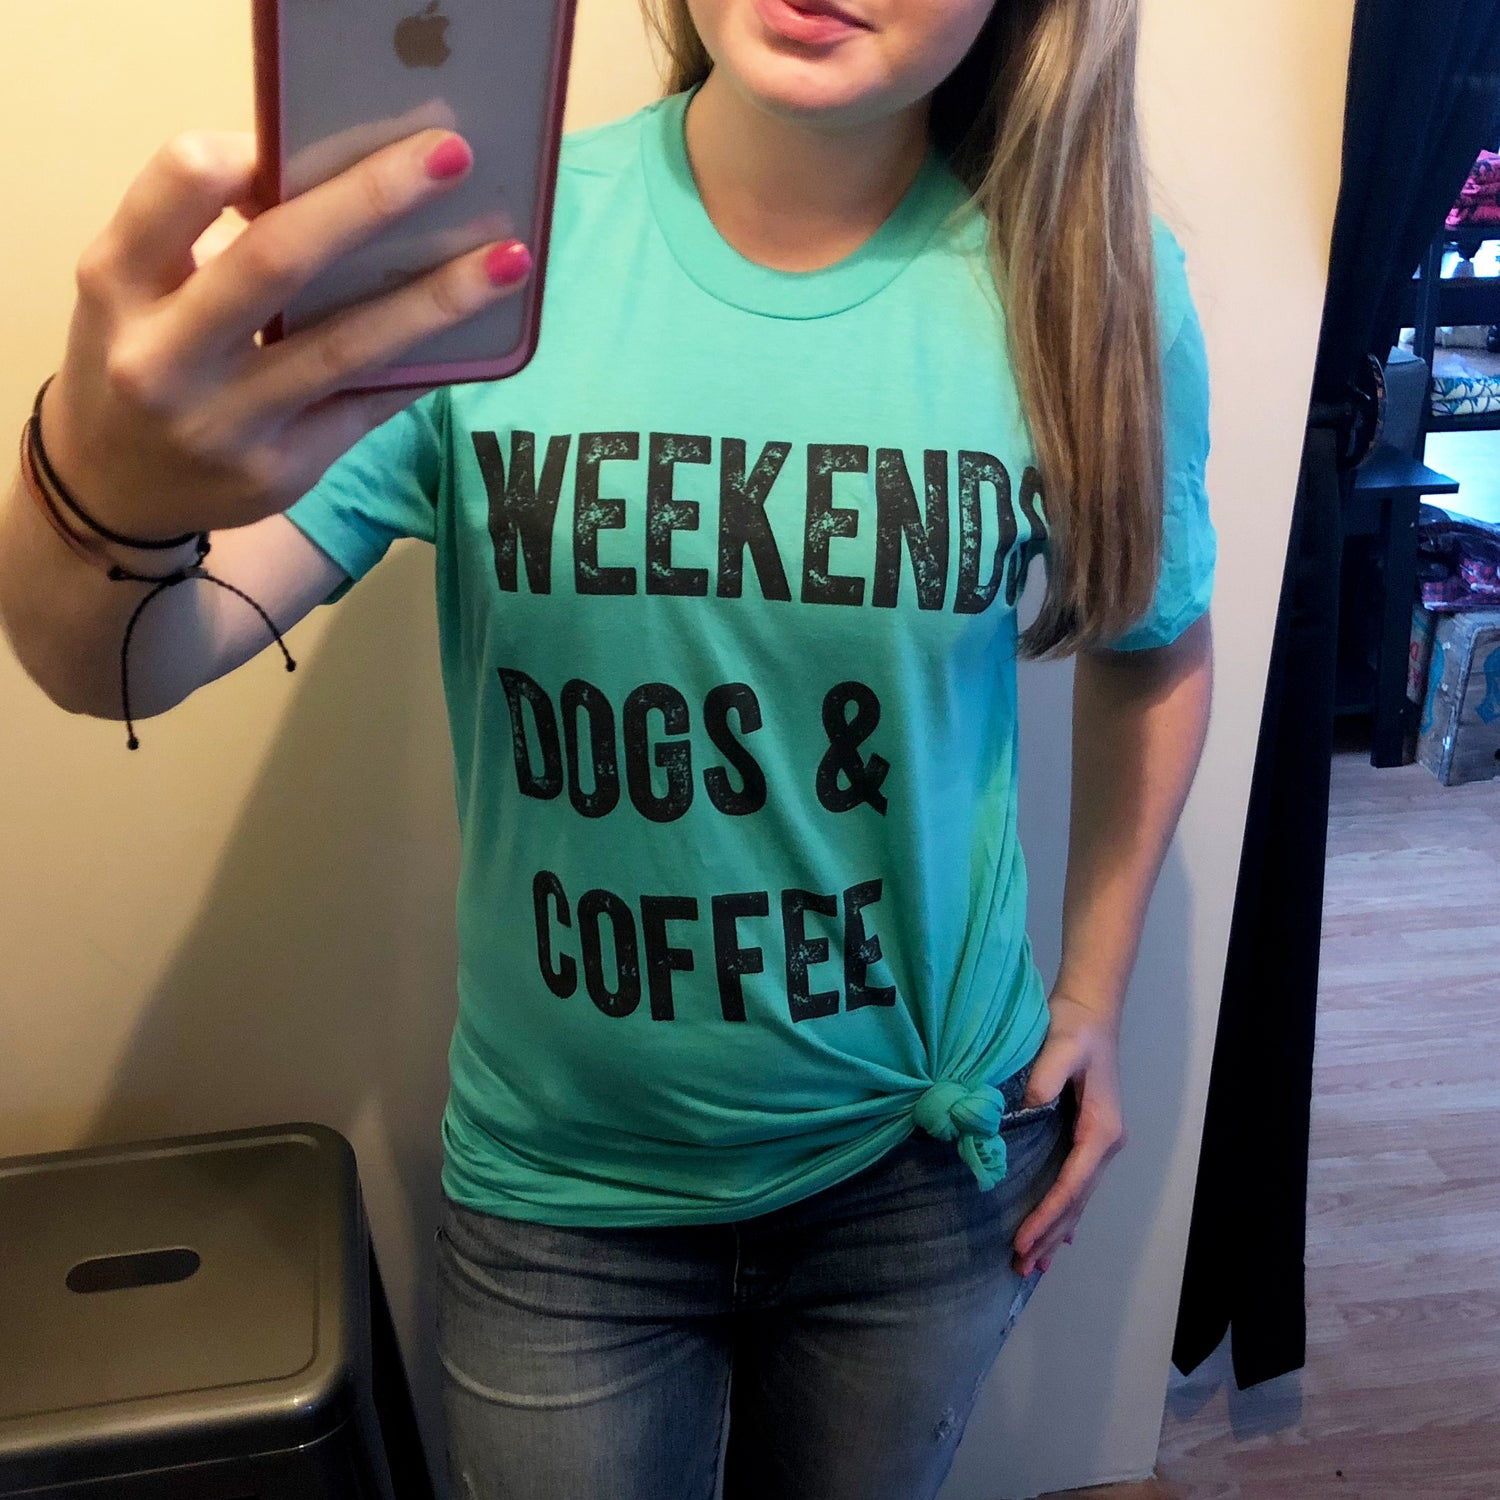 Weekends, Dogs & Coffee - Graphic T-Shirt